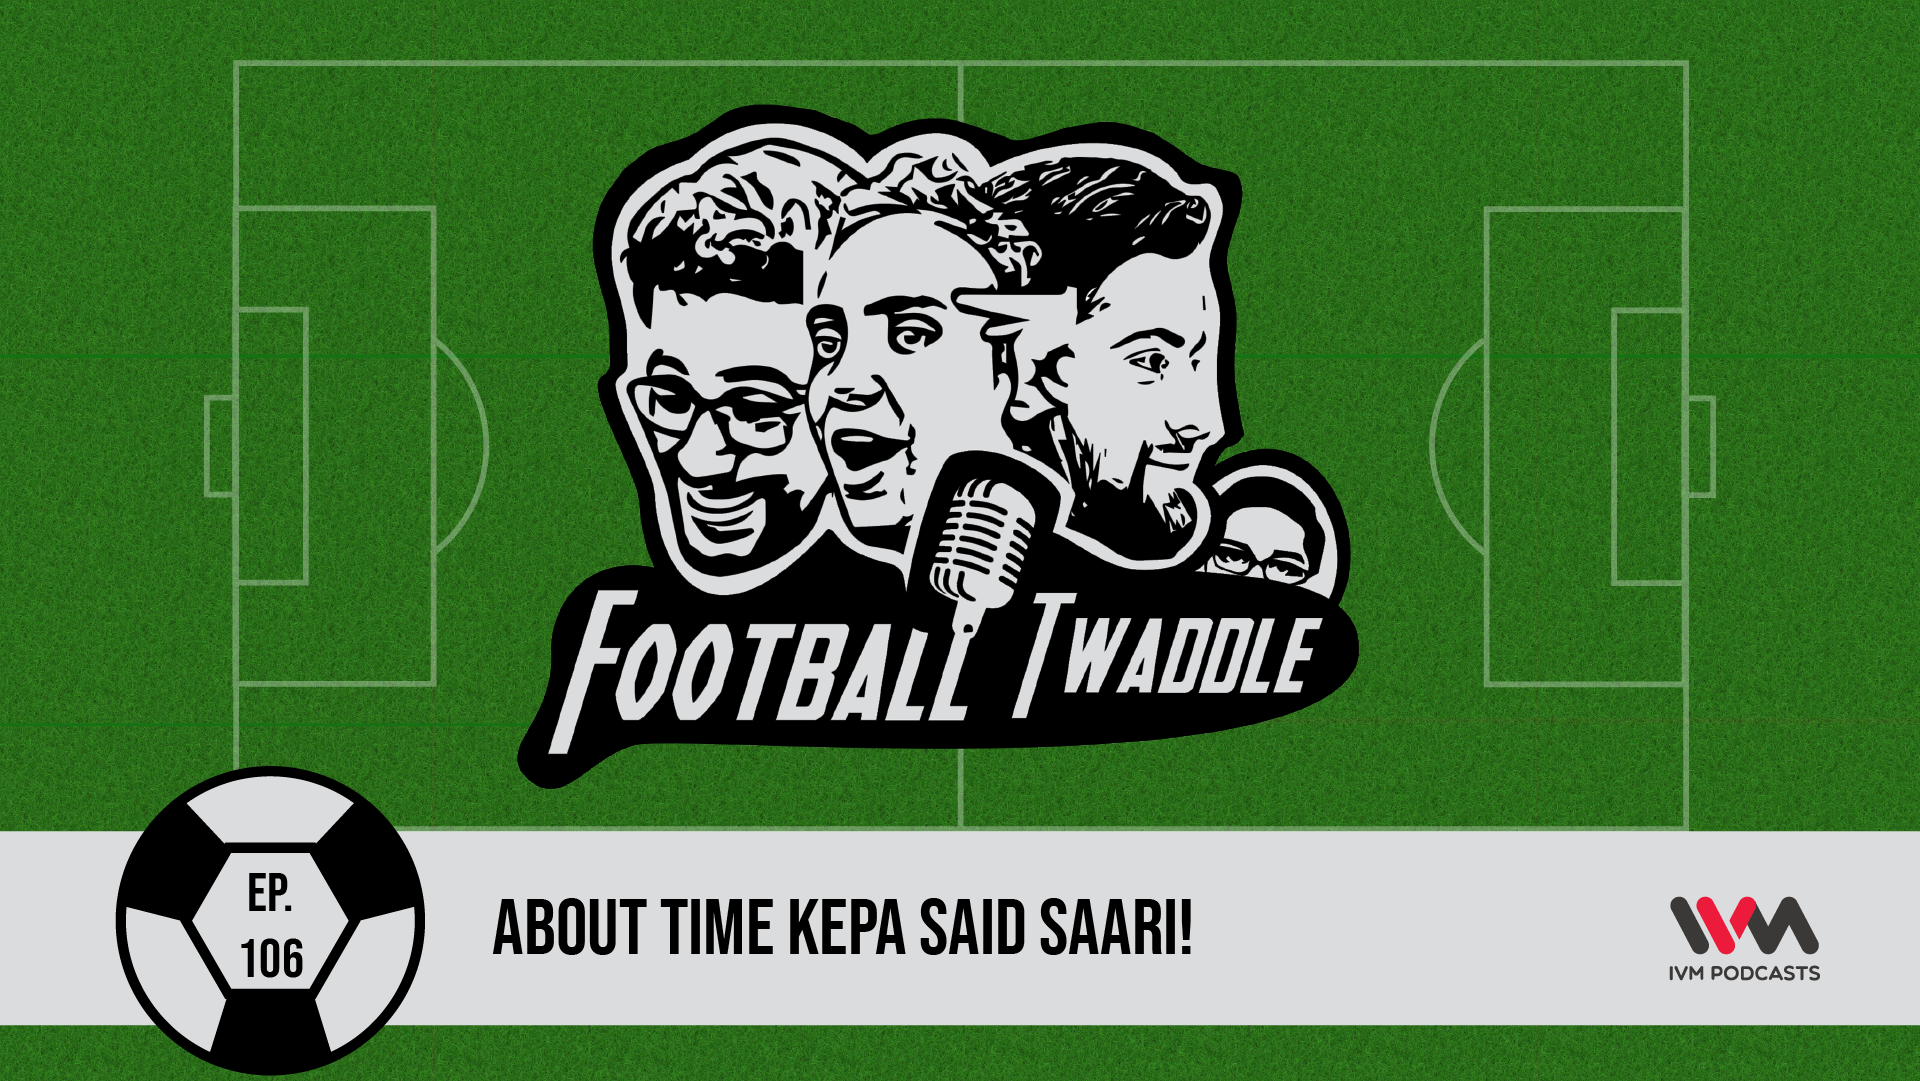 FootballTwaddleEpisode106.png